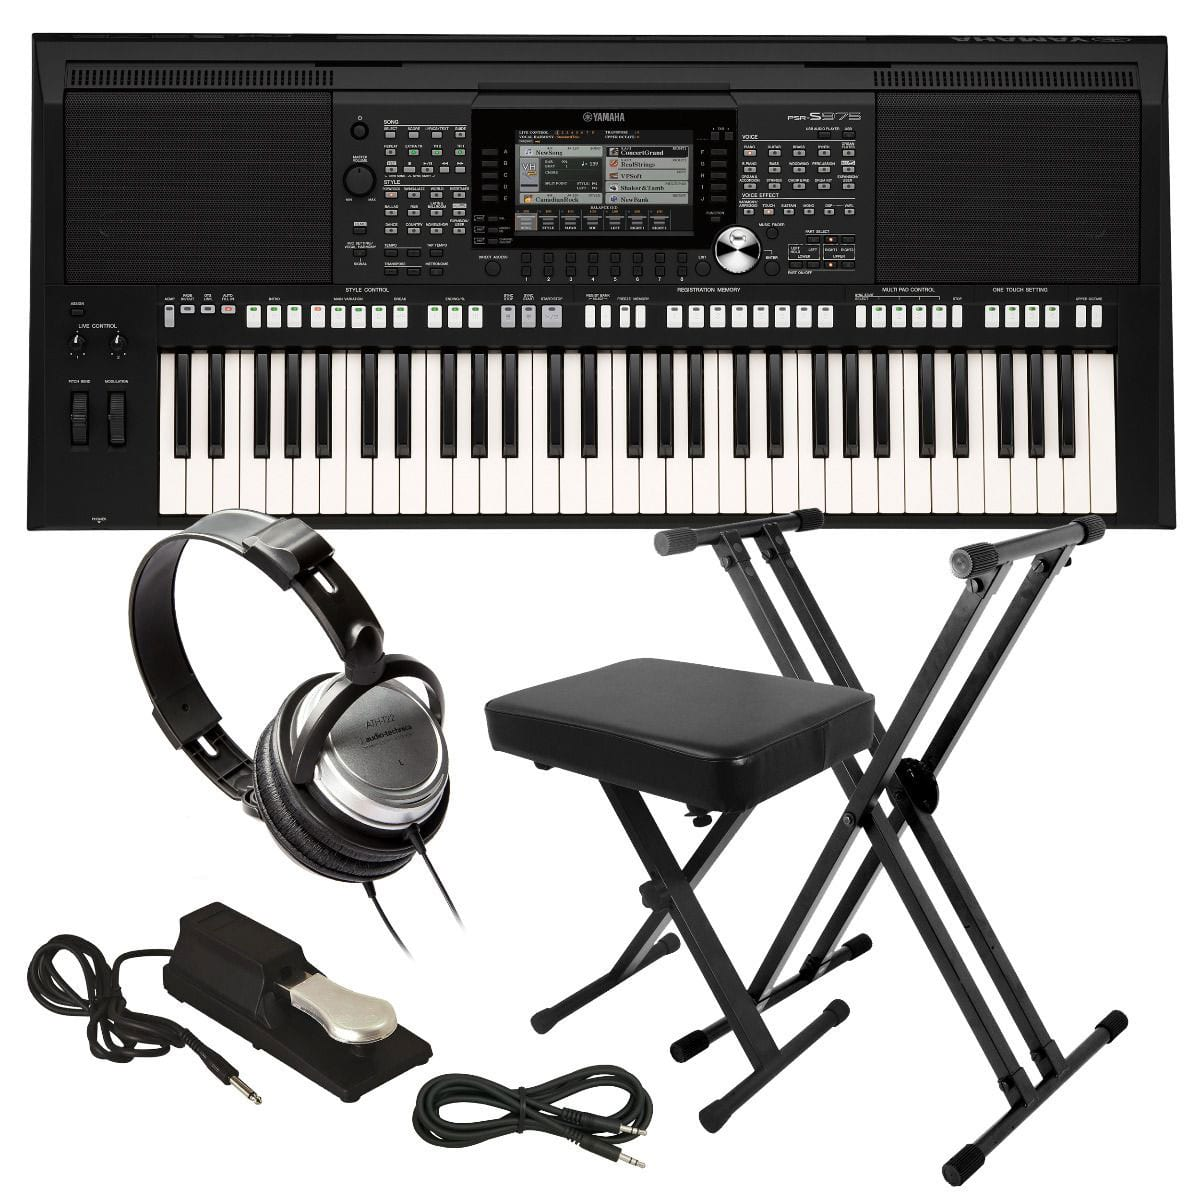 yamaha psr s975 arranger workstation keyboard key. Black Bedroom Furniture Sets. Home Design Ideas